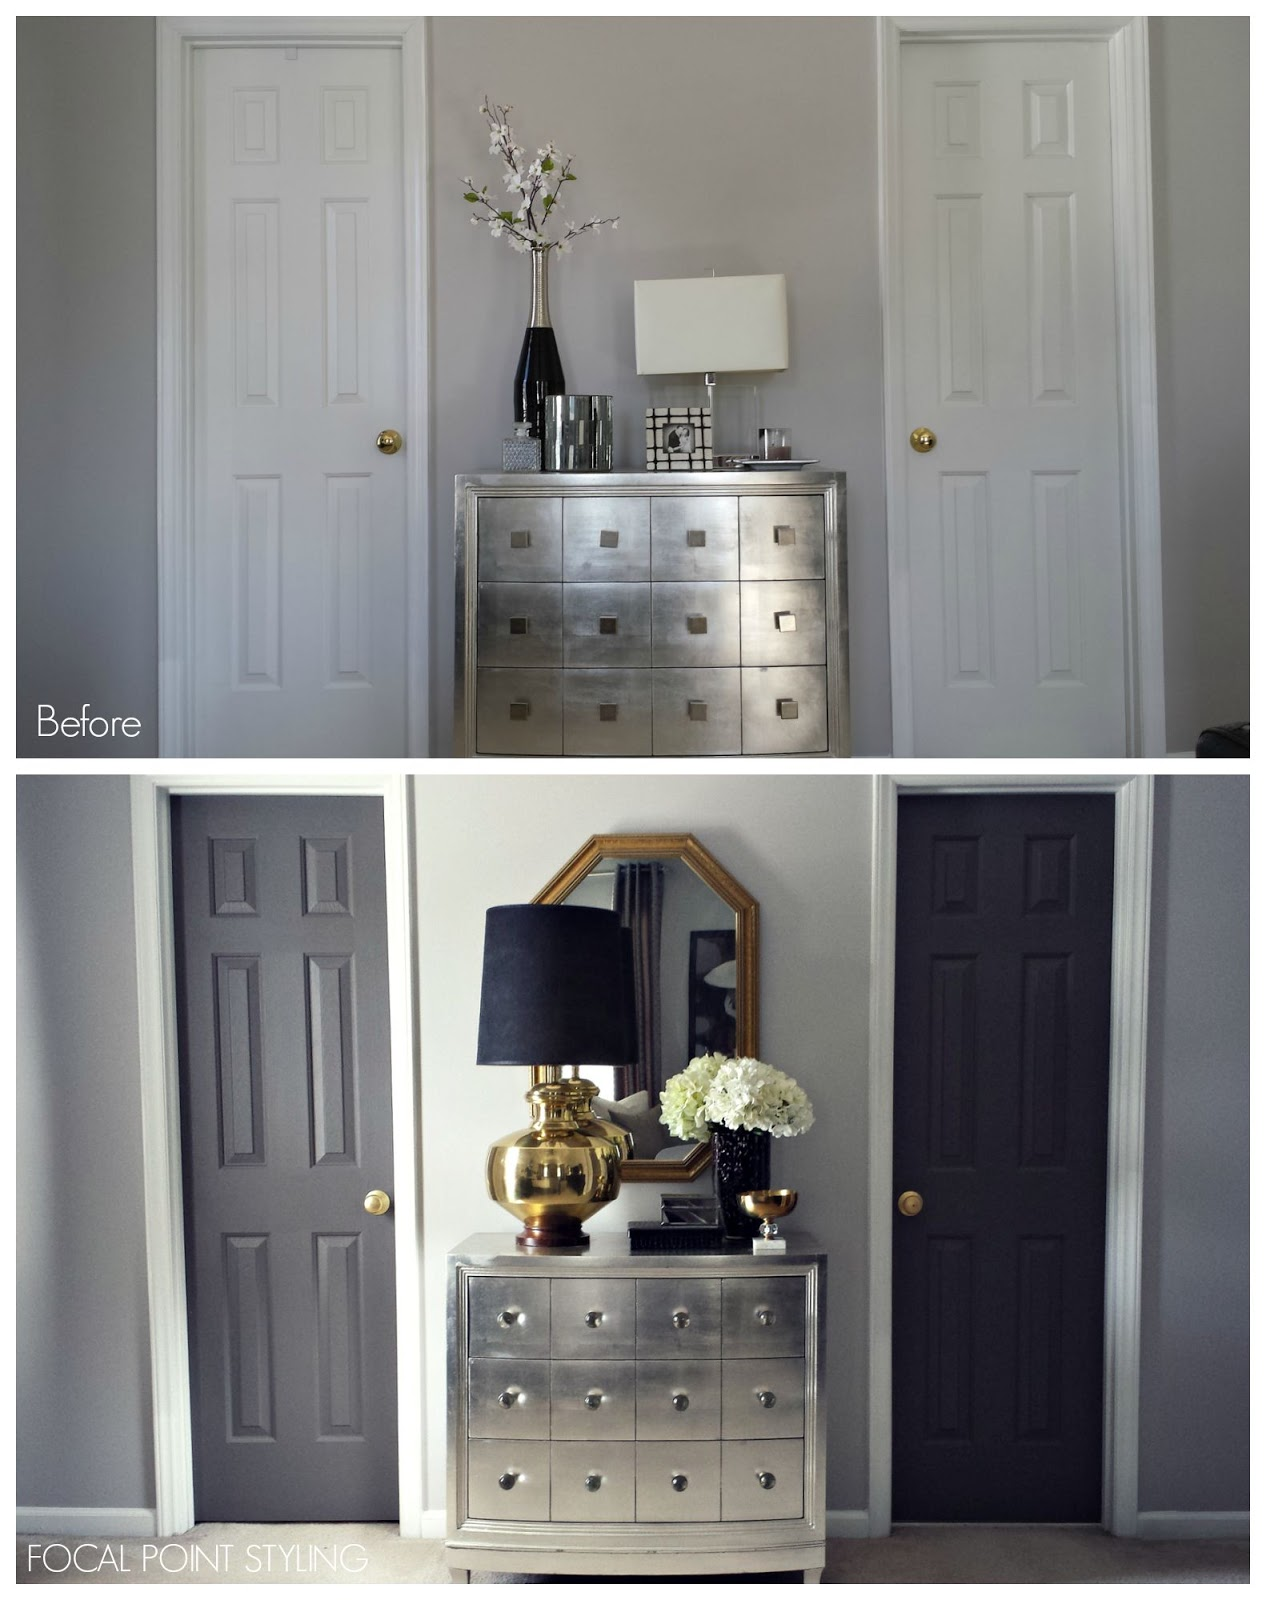 FOCAL POINT STYLING How To Paint Interior Doors Black u0026 Update Brass Hardware : door paint finish - pezcame.com